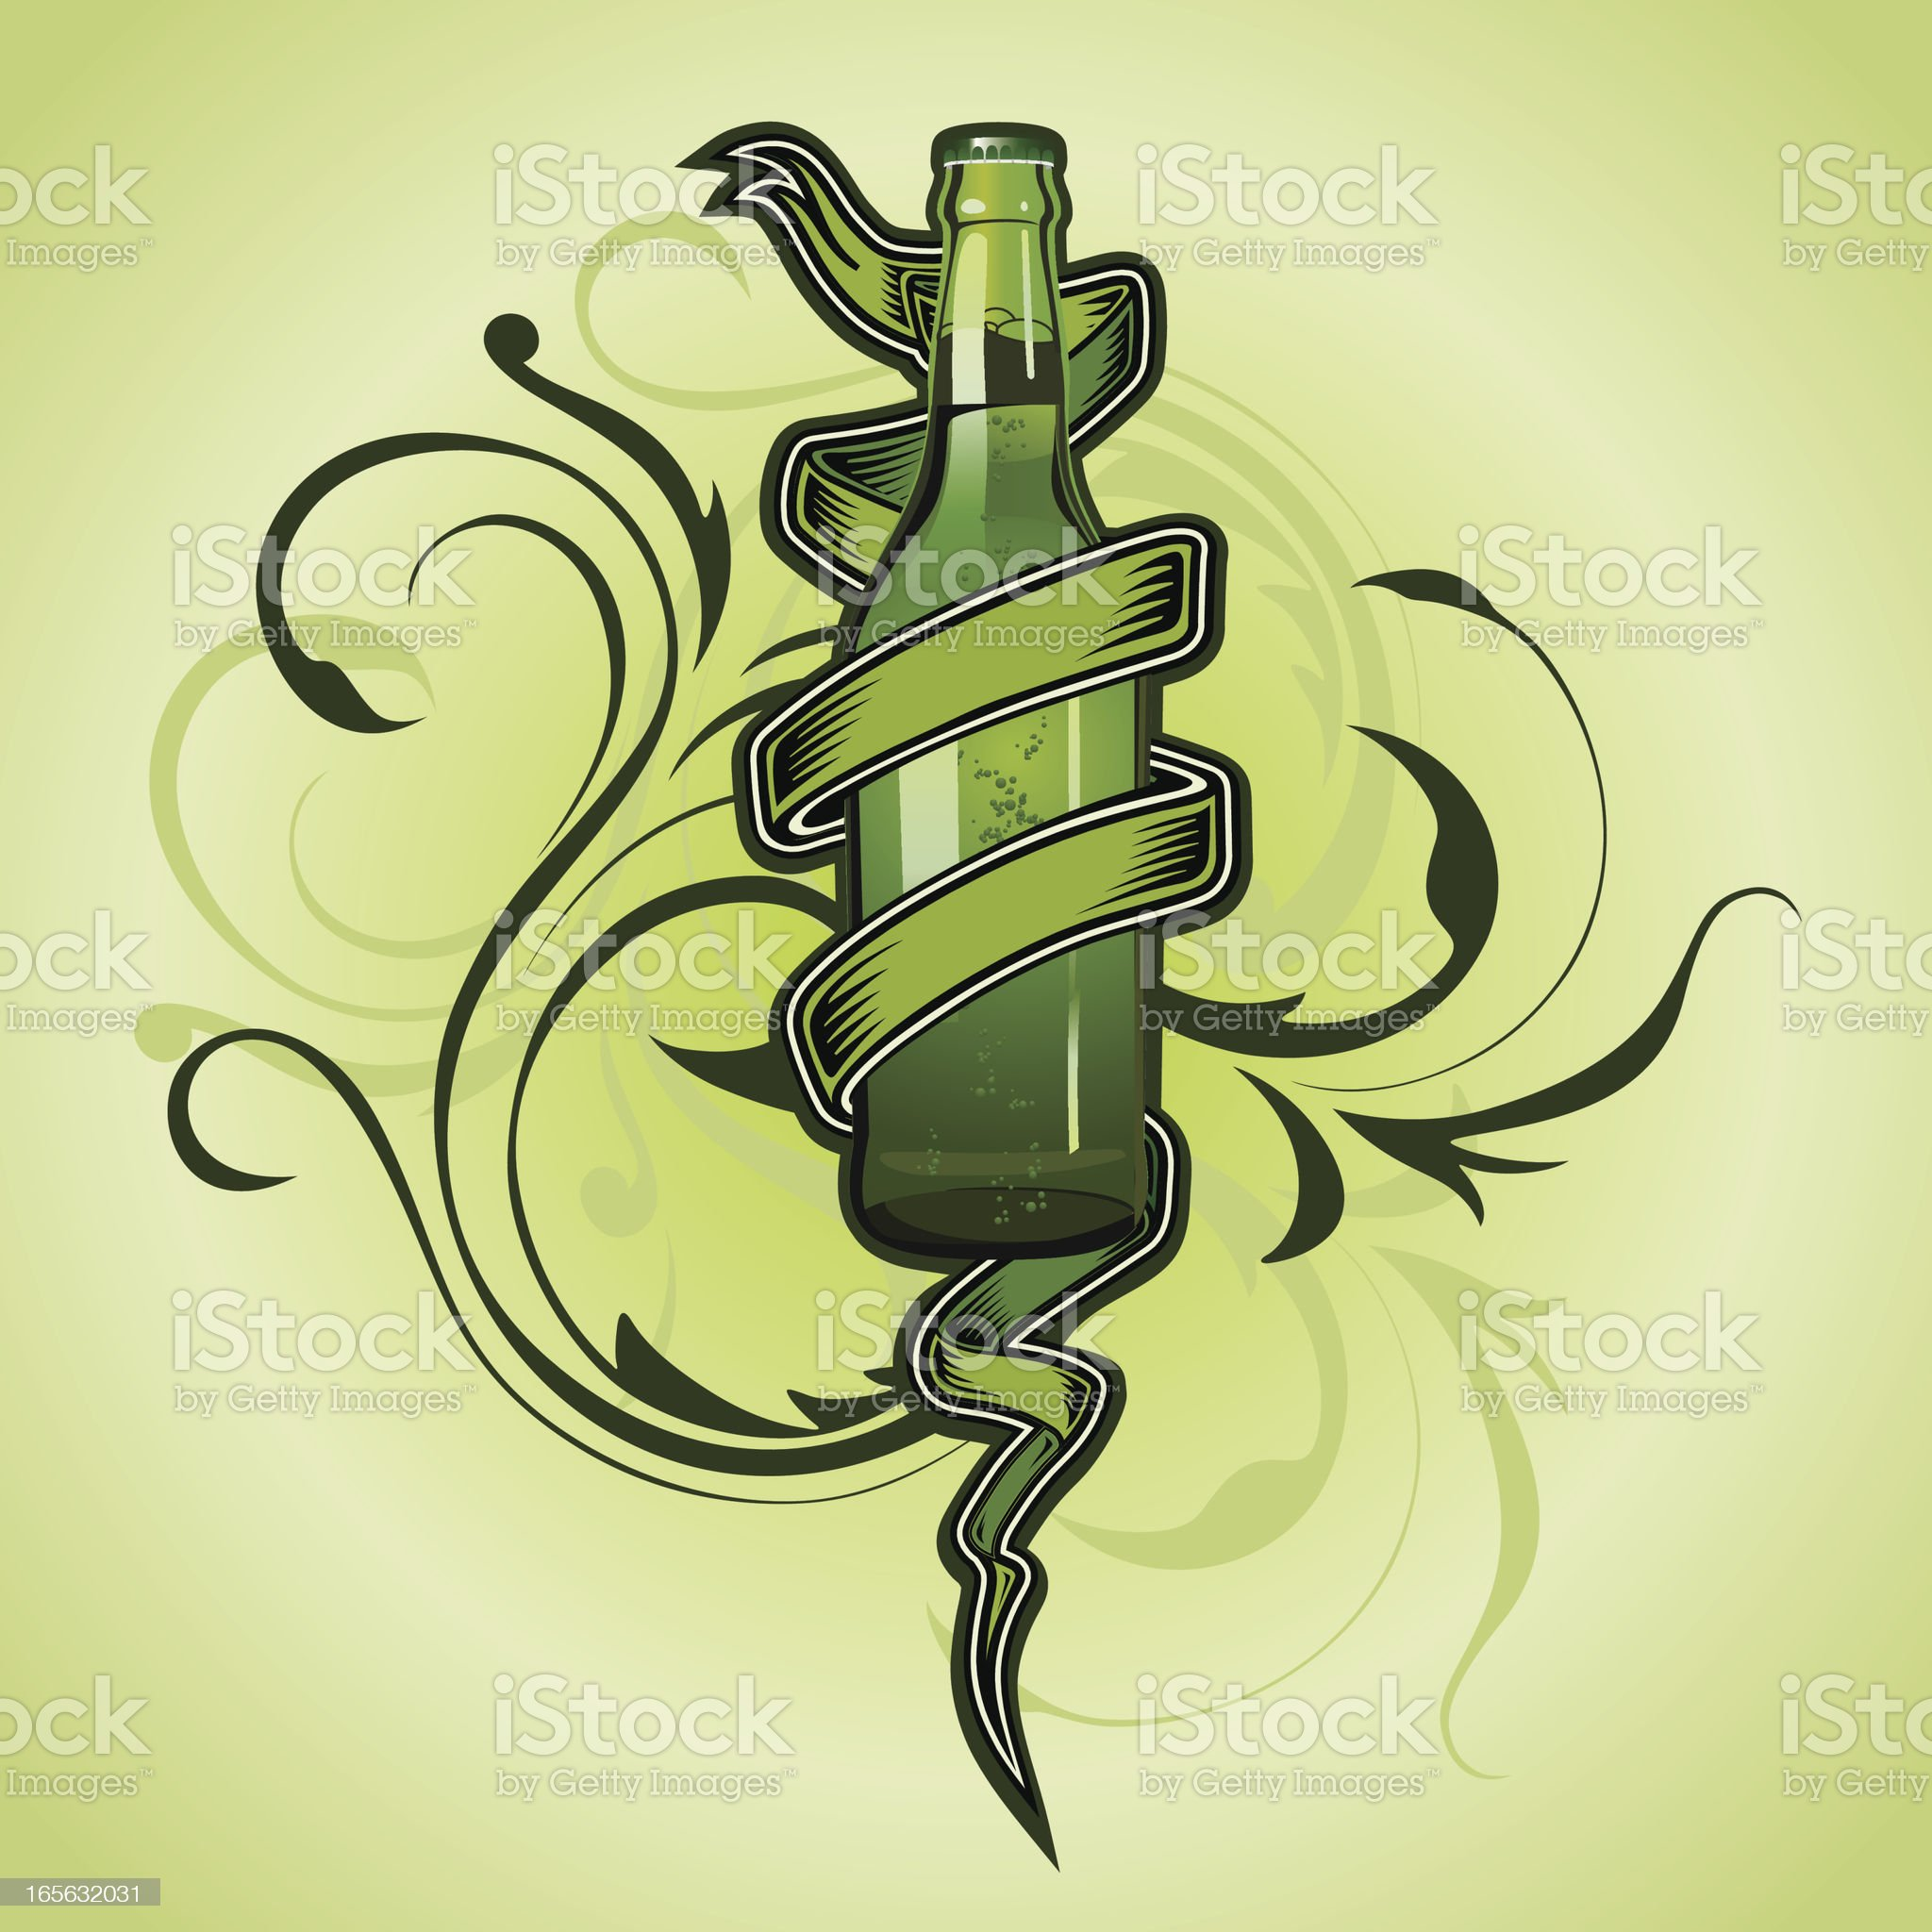 St. Patrick beer tattoo royalty-free stock vector art